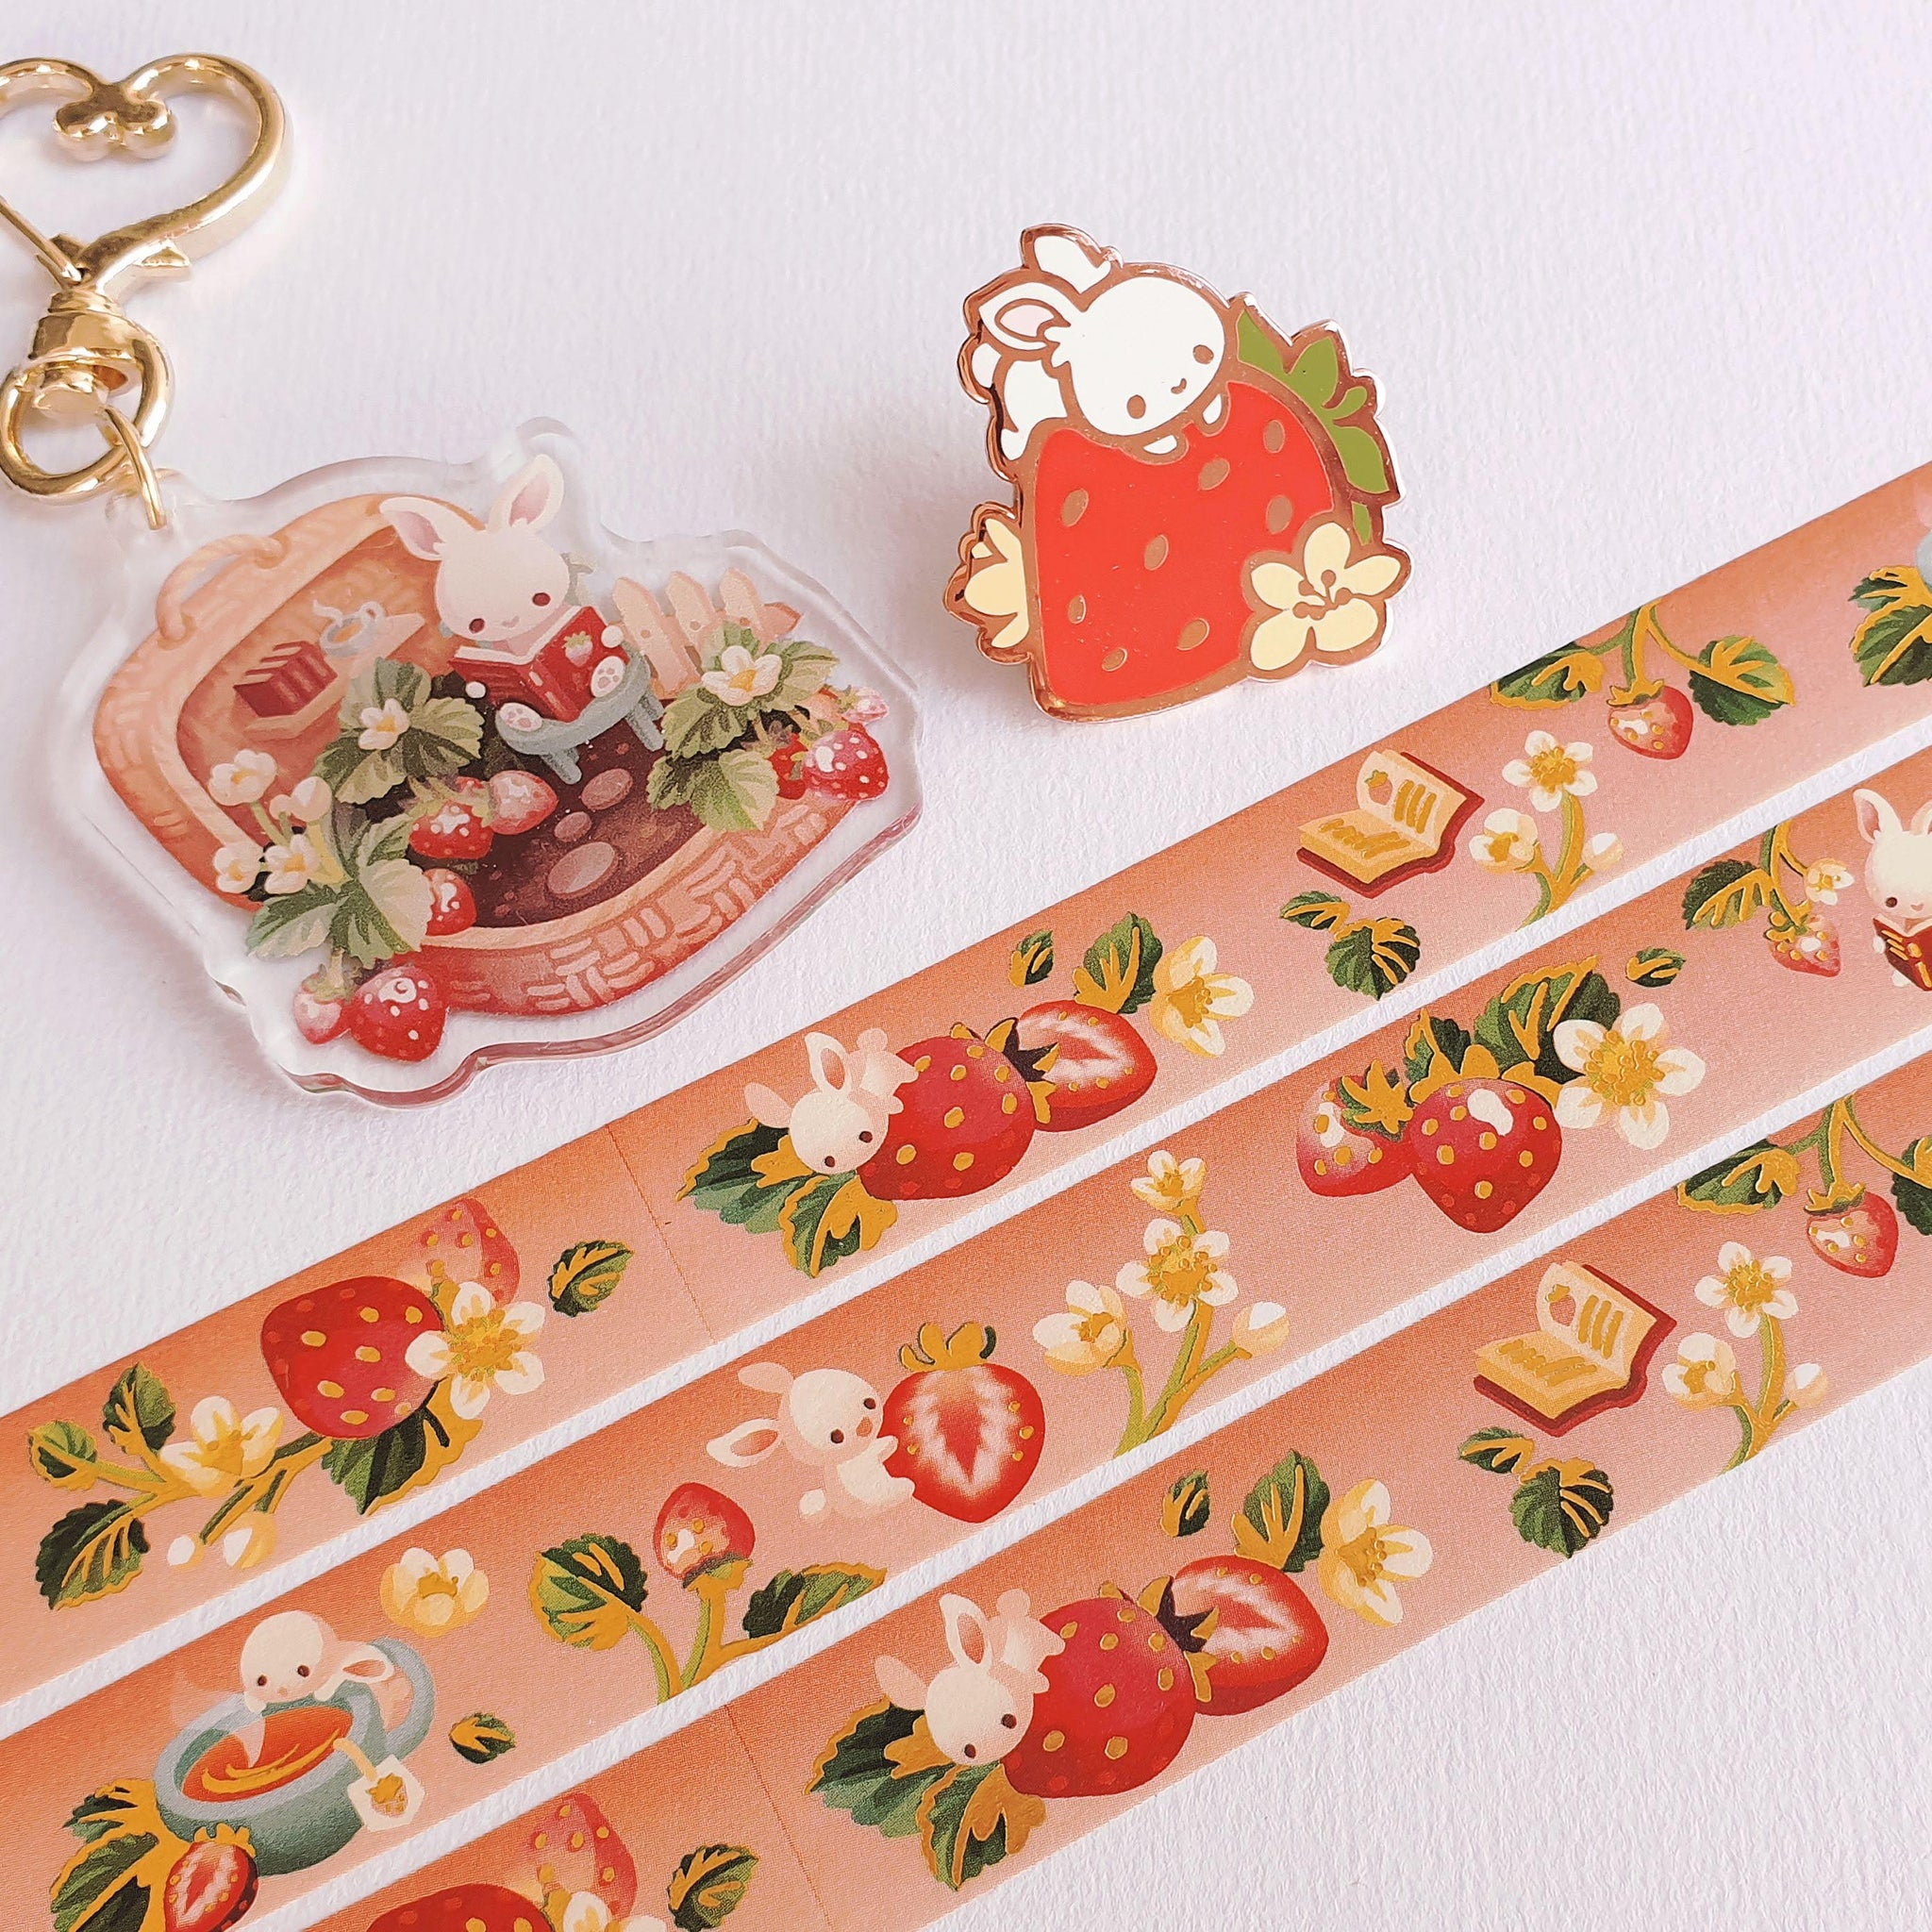 Fruit Gardens Value Set: Strawberry - Goldfishkang